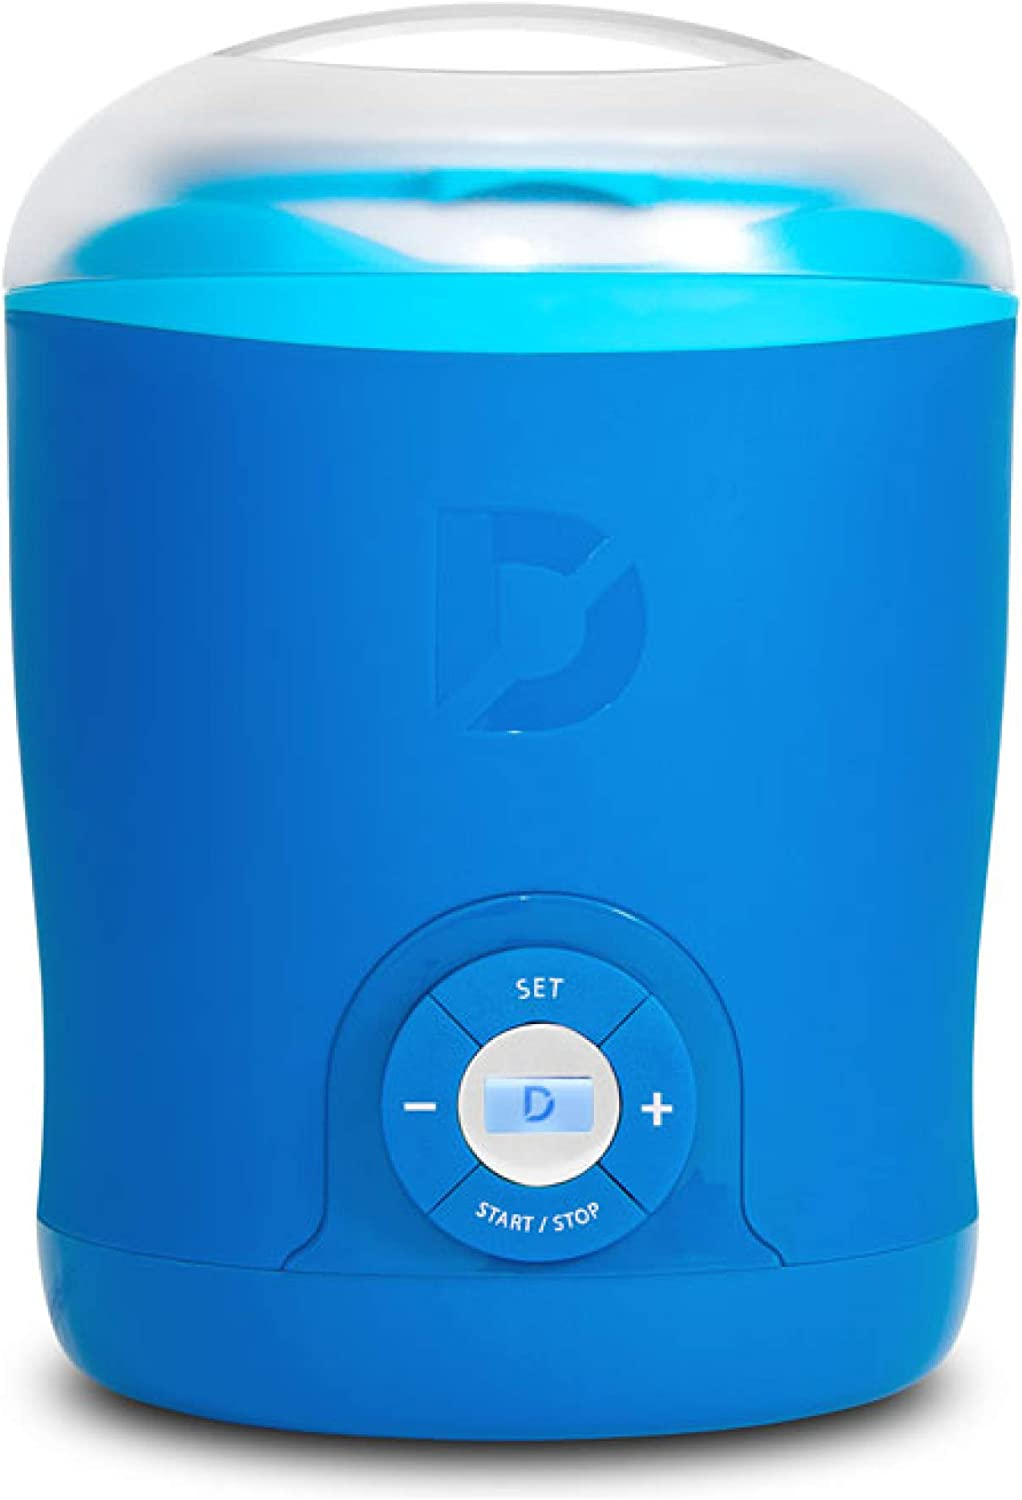 Dash Greek Yogurt Maker Machine with LCD Display + 2 BPA-Free Storage Containers with Lids, Blue: Kitchen & Dining